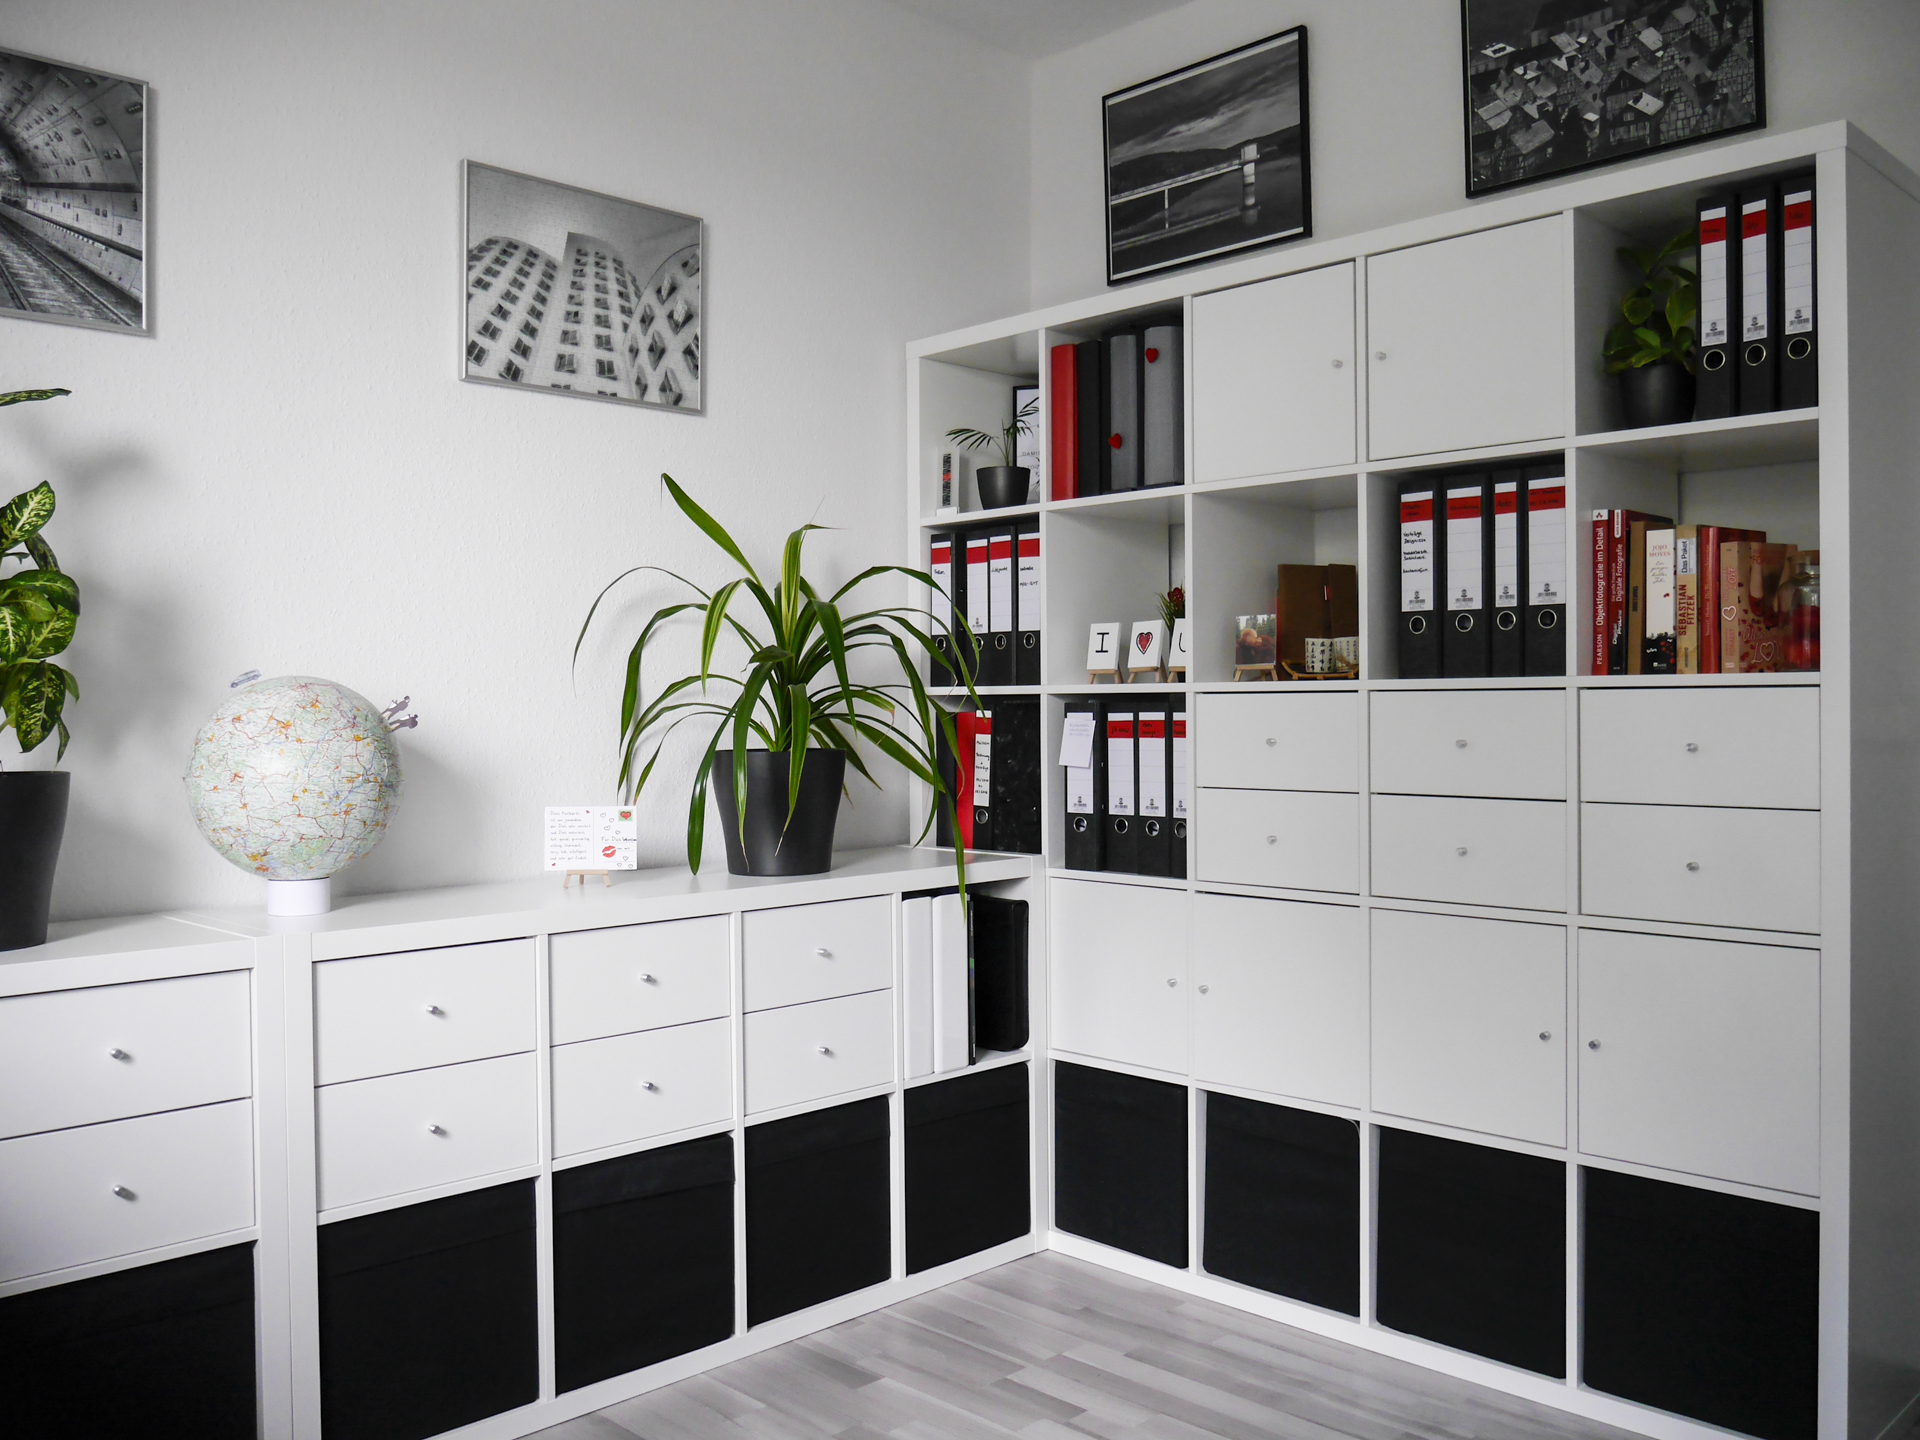 b ro einrichten kreative ideen zum nachmachen. Black Bedroom Furniture Sets. Home Design Ideas